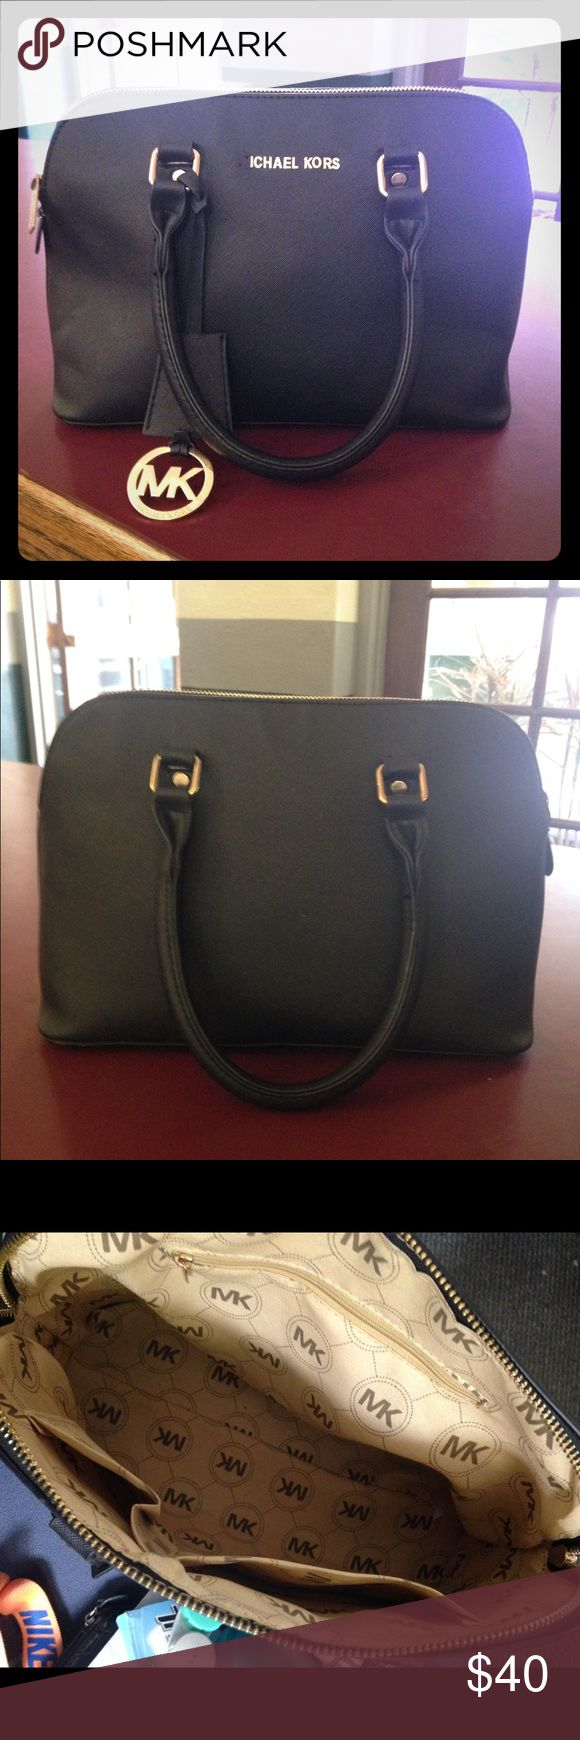 Medium black Michael Kors Purse Best bag I've ever had. Great overall condition however does have damage as seen in photos. Seems to one handle are coming loose and unfortunately the M of Michael has fallen off. Just don't have the time to fix or keep anymore. Rest of the bag is in great condition no other damages, stains, or rips. Am willing to negotiate. Make an offer:) Michael Kors Bags Shoulder Bags